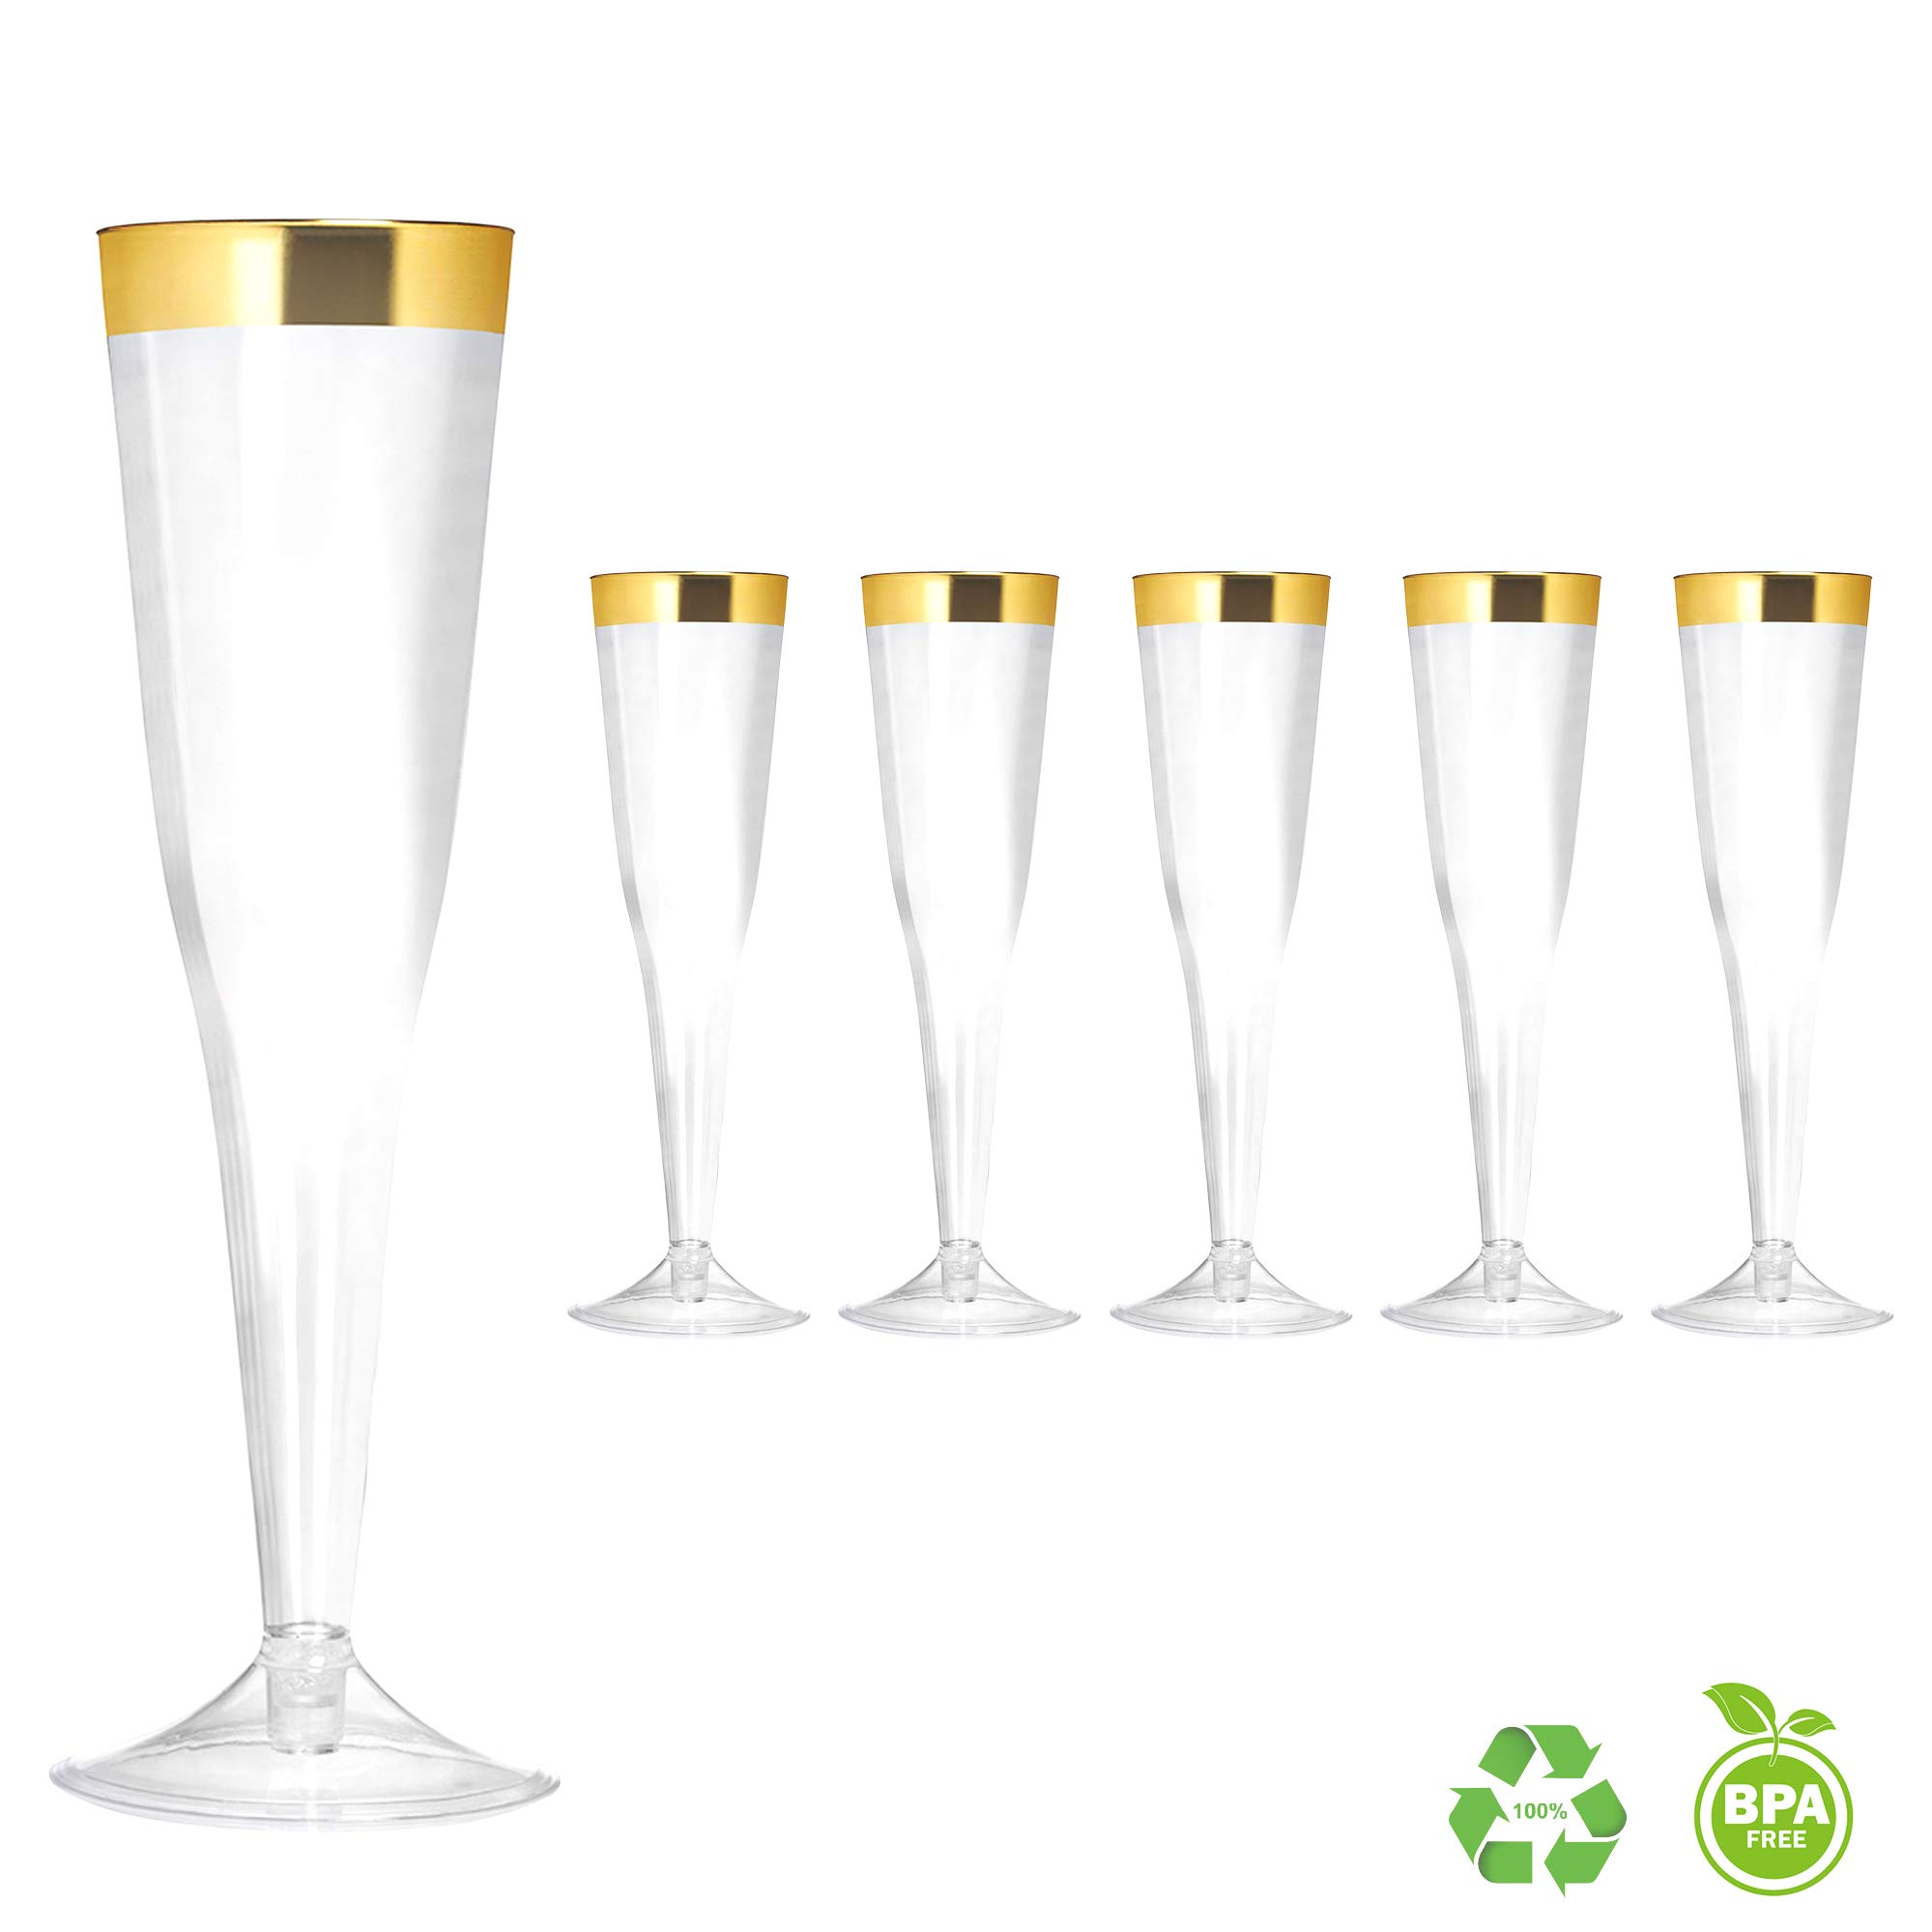 Elegant Gold Rimmed 6 Ounce Clear Plastic Champagne Flutes Fancy Disposable Cups with Gold Rim Perfect for Holiday Party Wedding and Everyday Occasions (50 Pack)